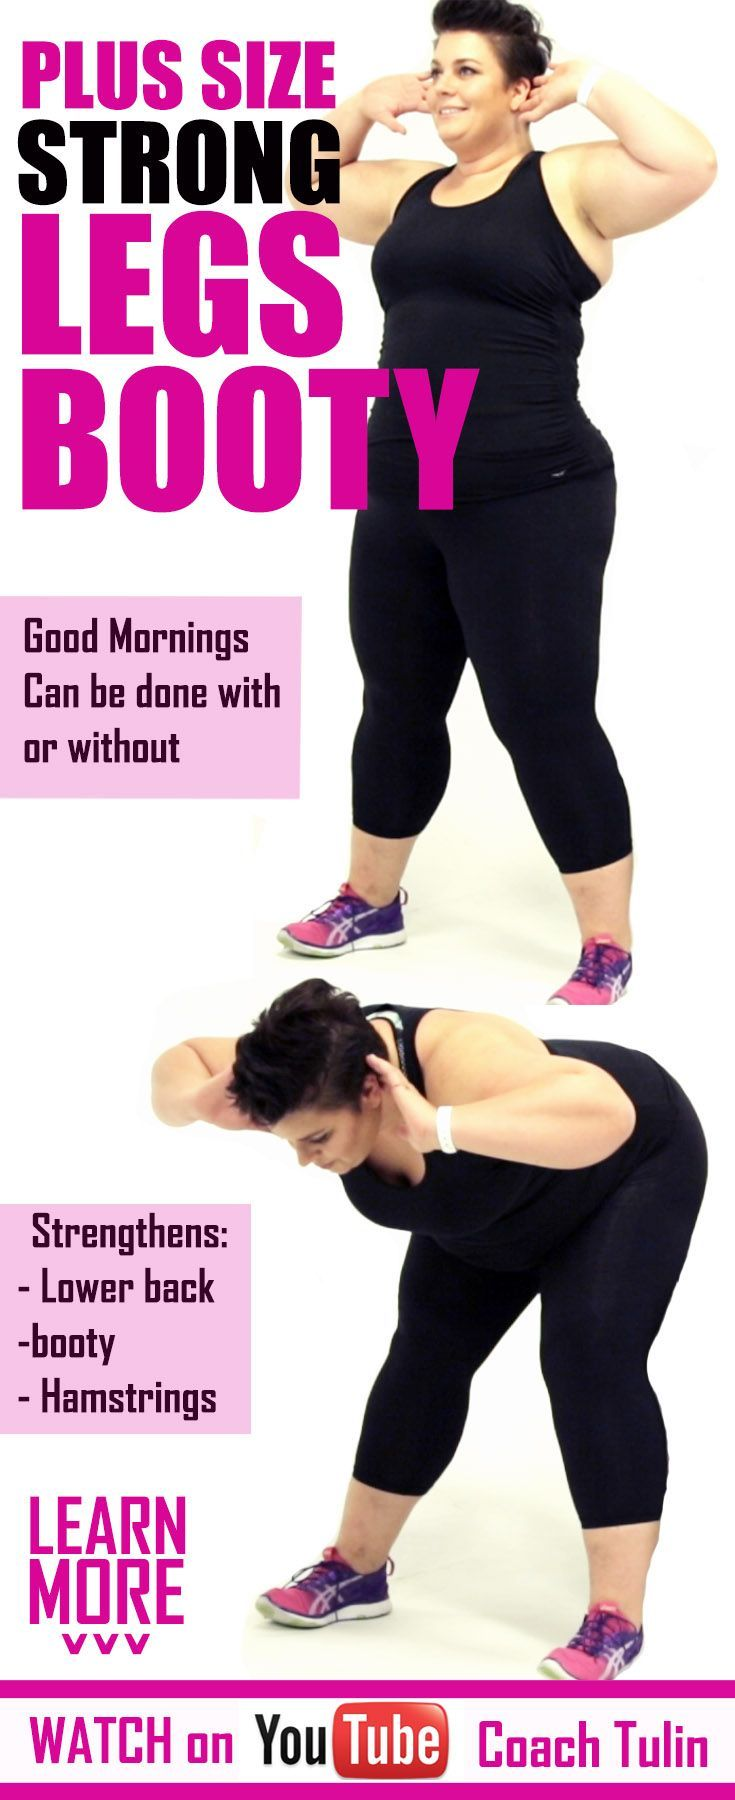 Health And Fitness: Good Mornings Hamstring Exercise Modification - pl...